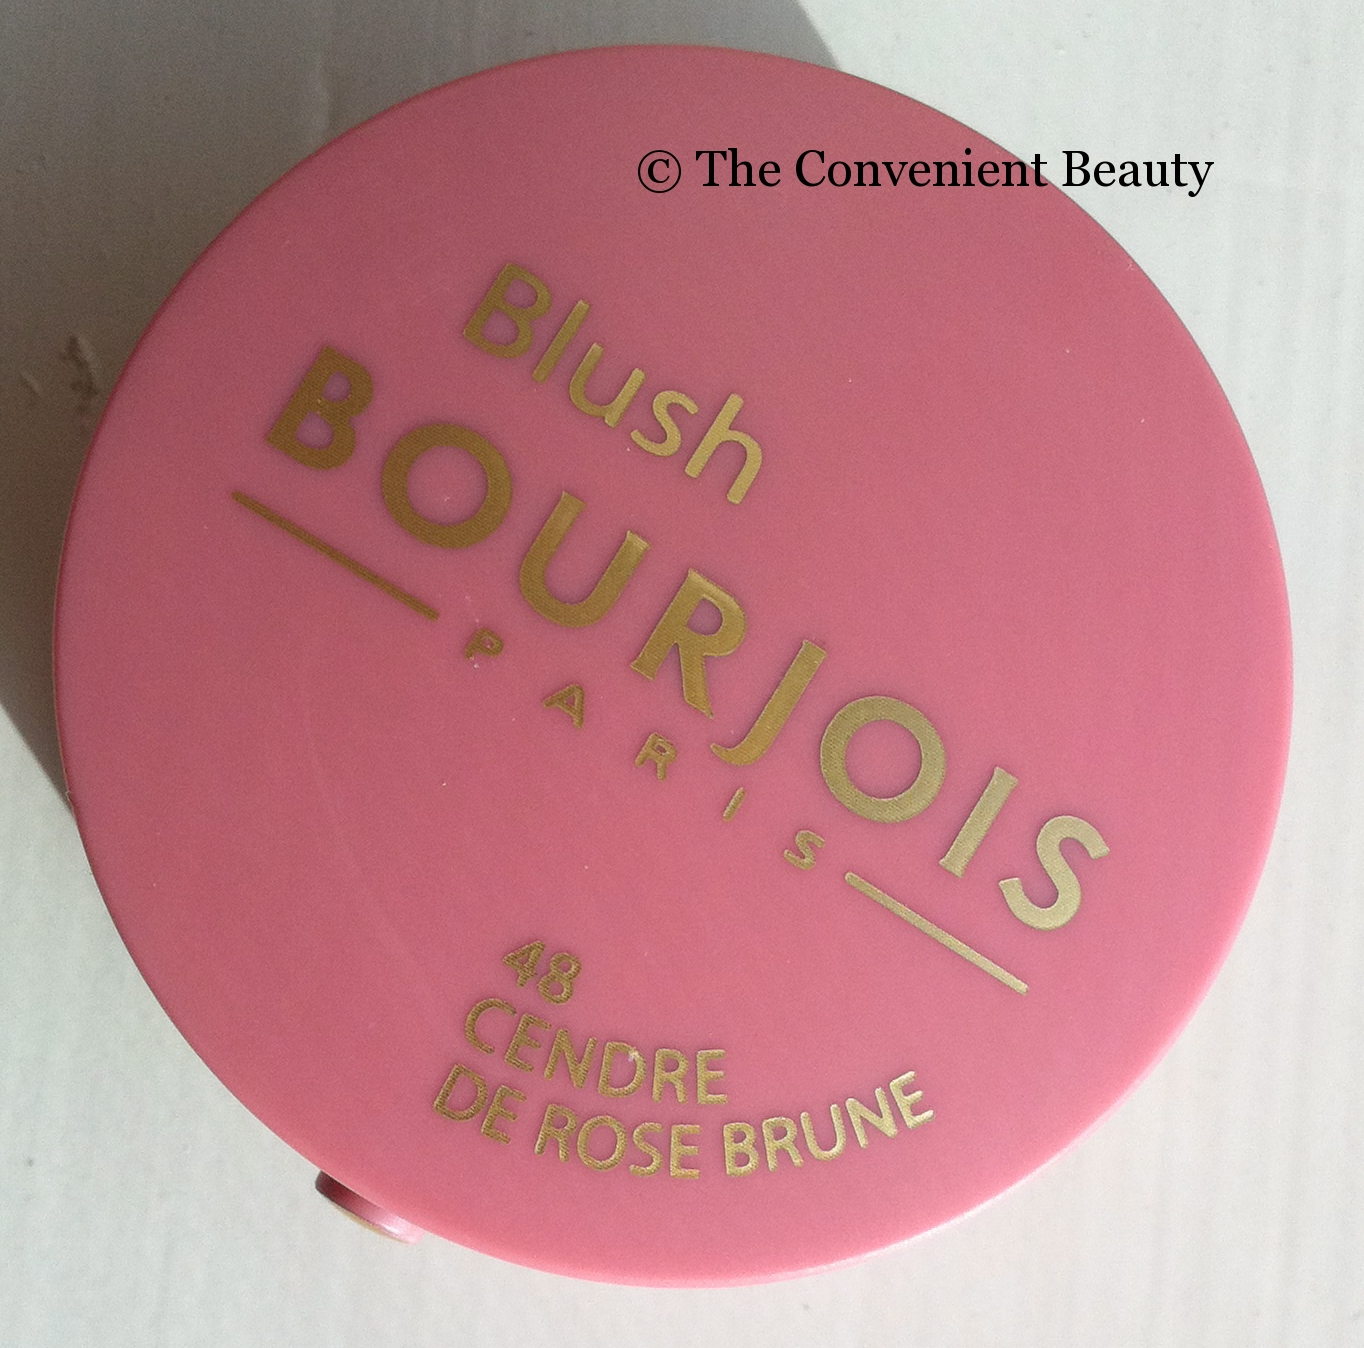 Image De Rose The Convenient Beauty Review Bourjois Blush 48 Le Cendre De Rose